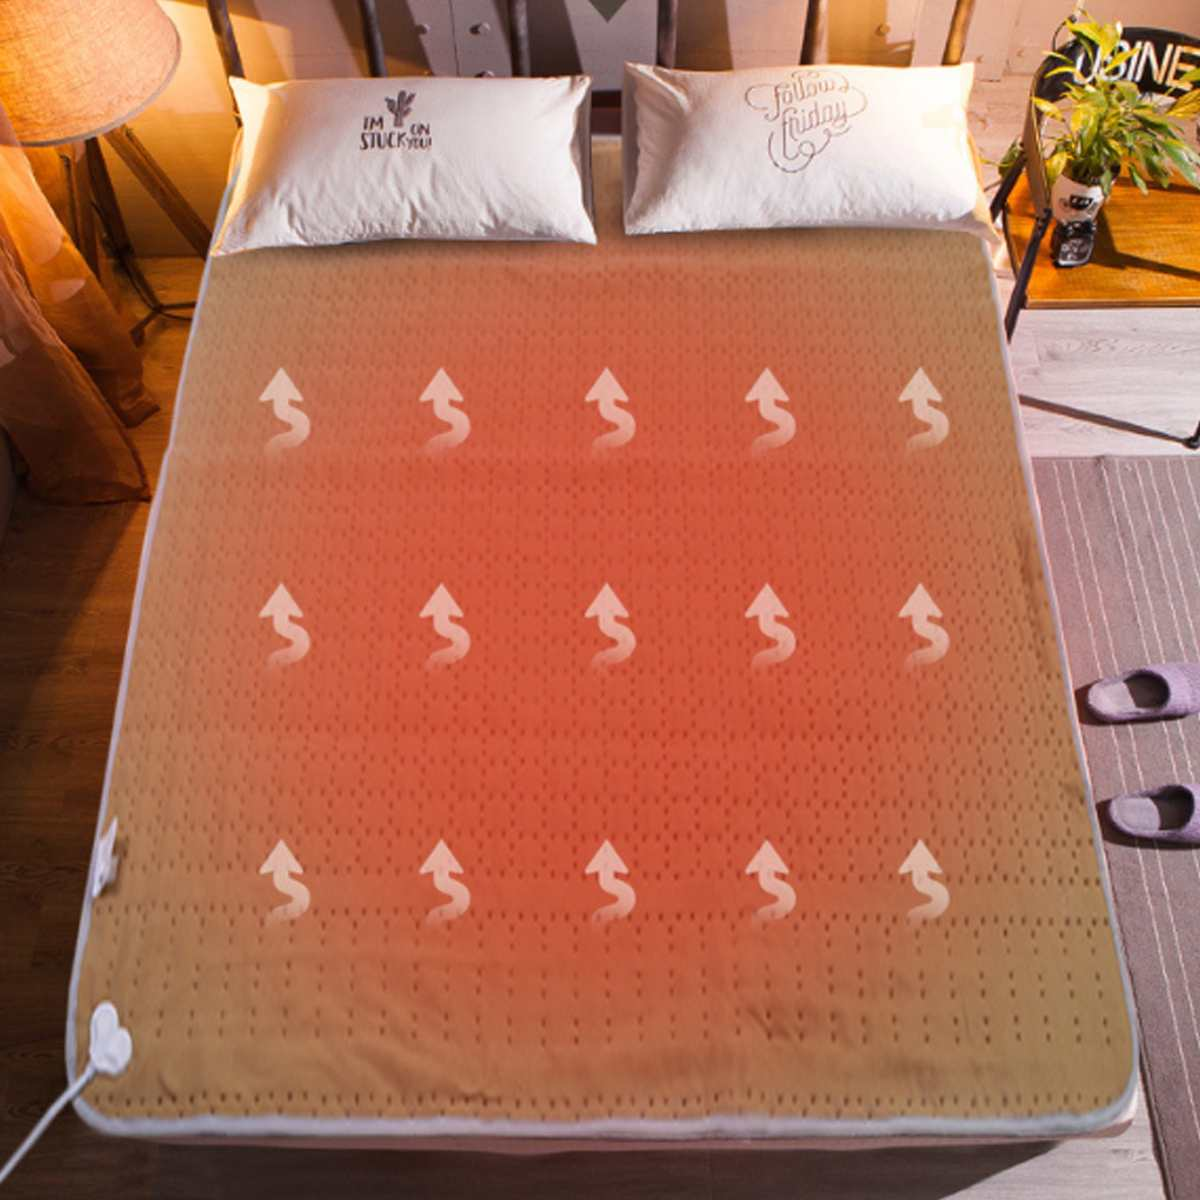 Electric Blanket Mat 220V Auto Electric Heated Blanket Mat Waterproof Heating Carpet 4 Gears Electric Heater Mattress